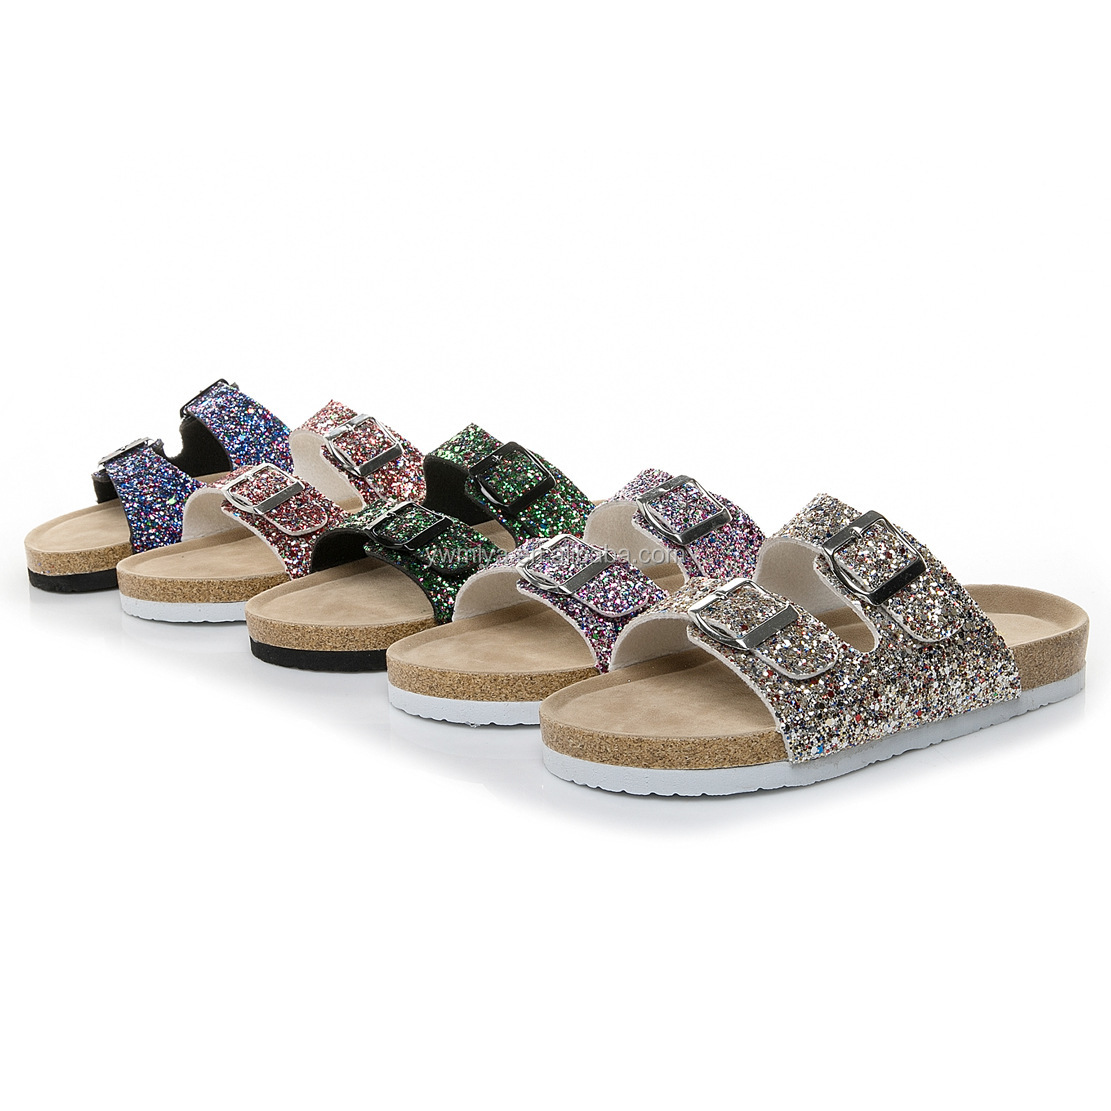 AM-019 hot selling New summer sequined double buckle beach slipper for women multi-color sparkly flip flop wholesale lady <strong>sandal</strong>